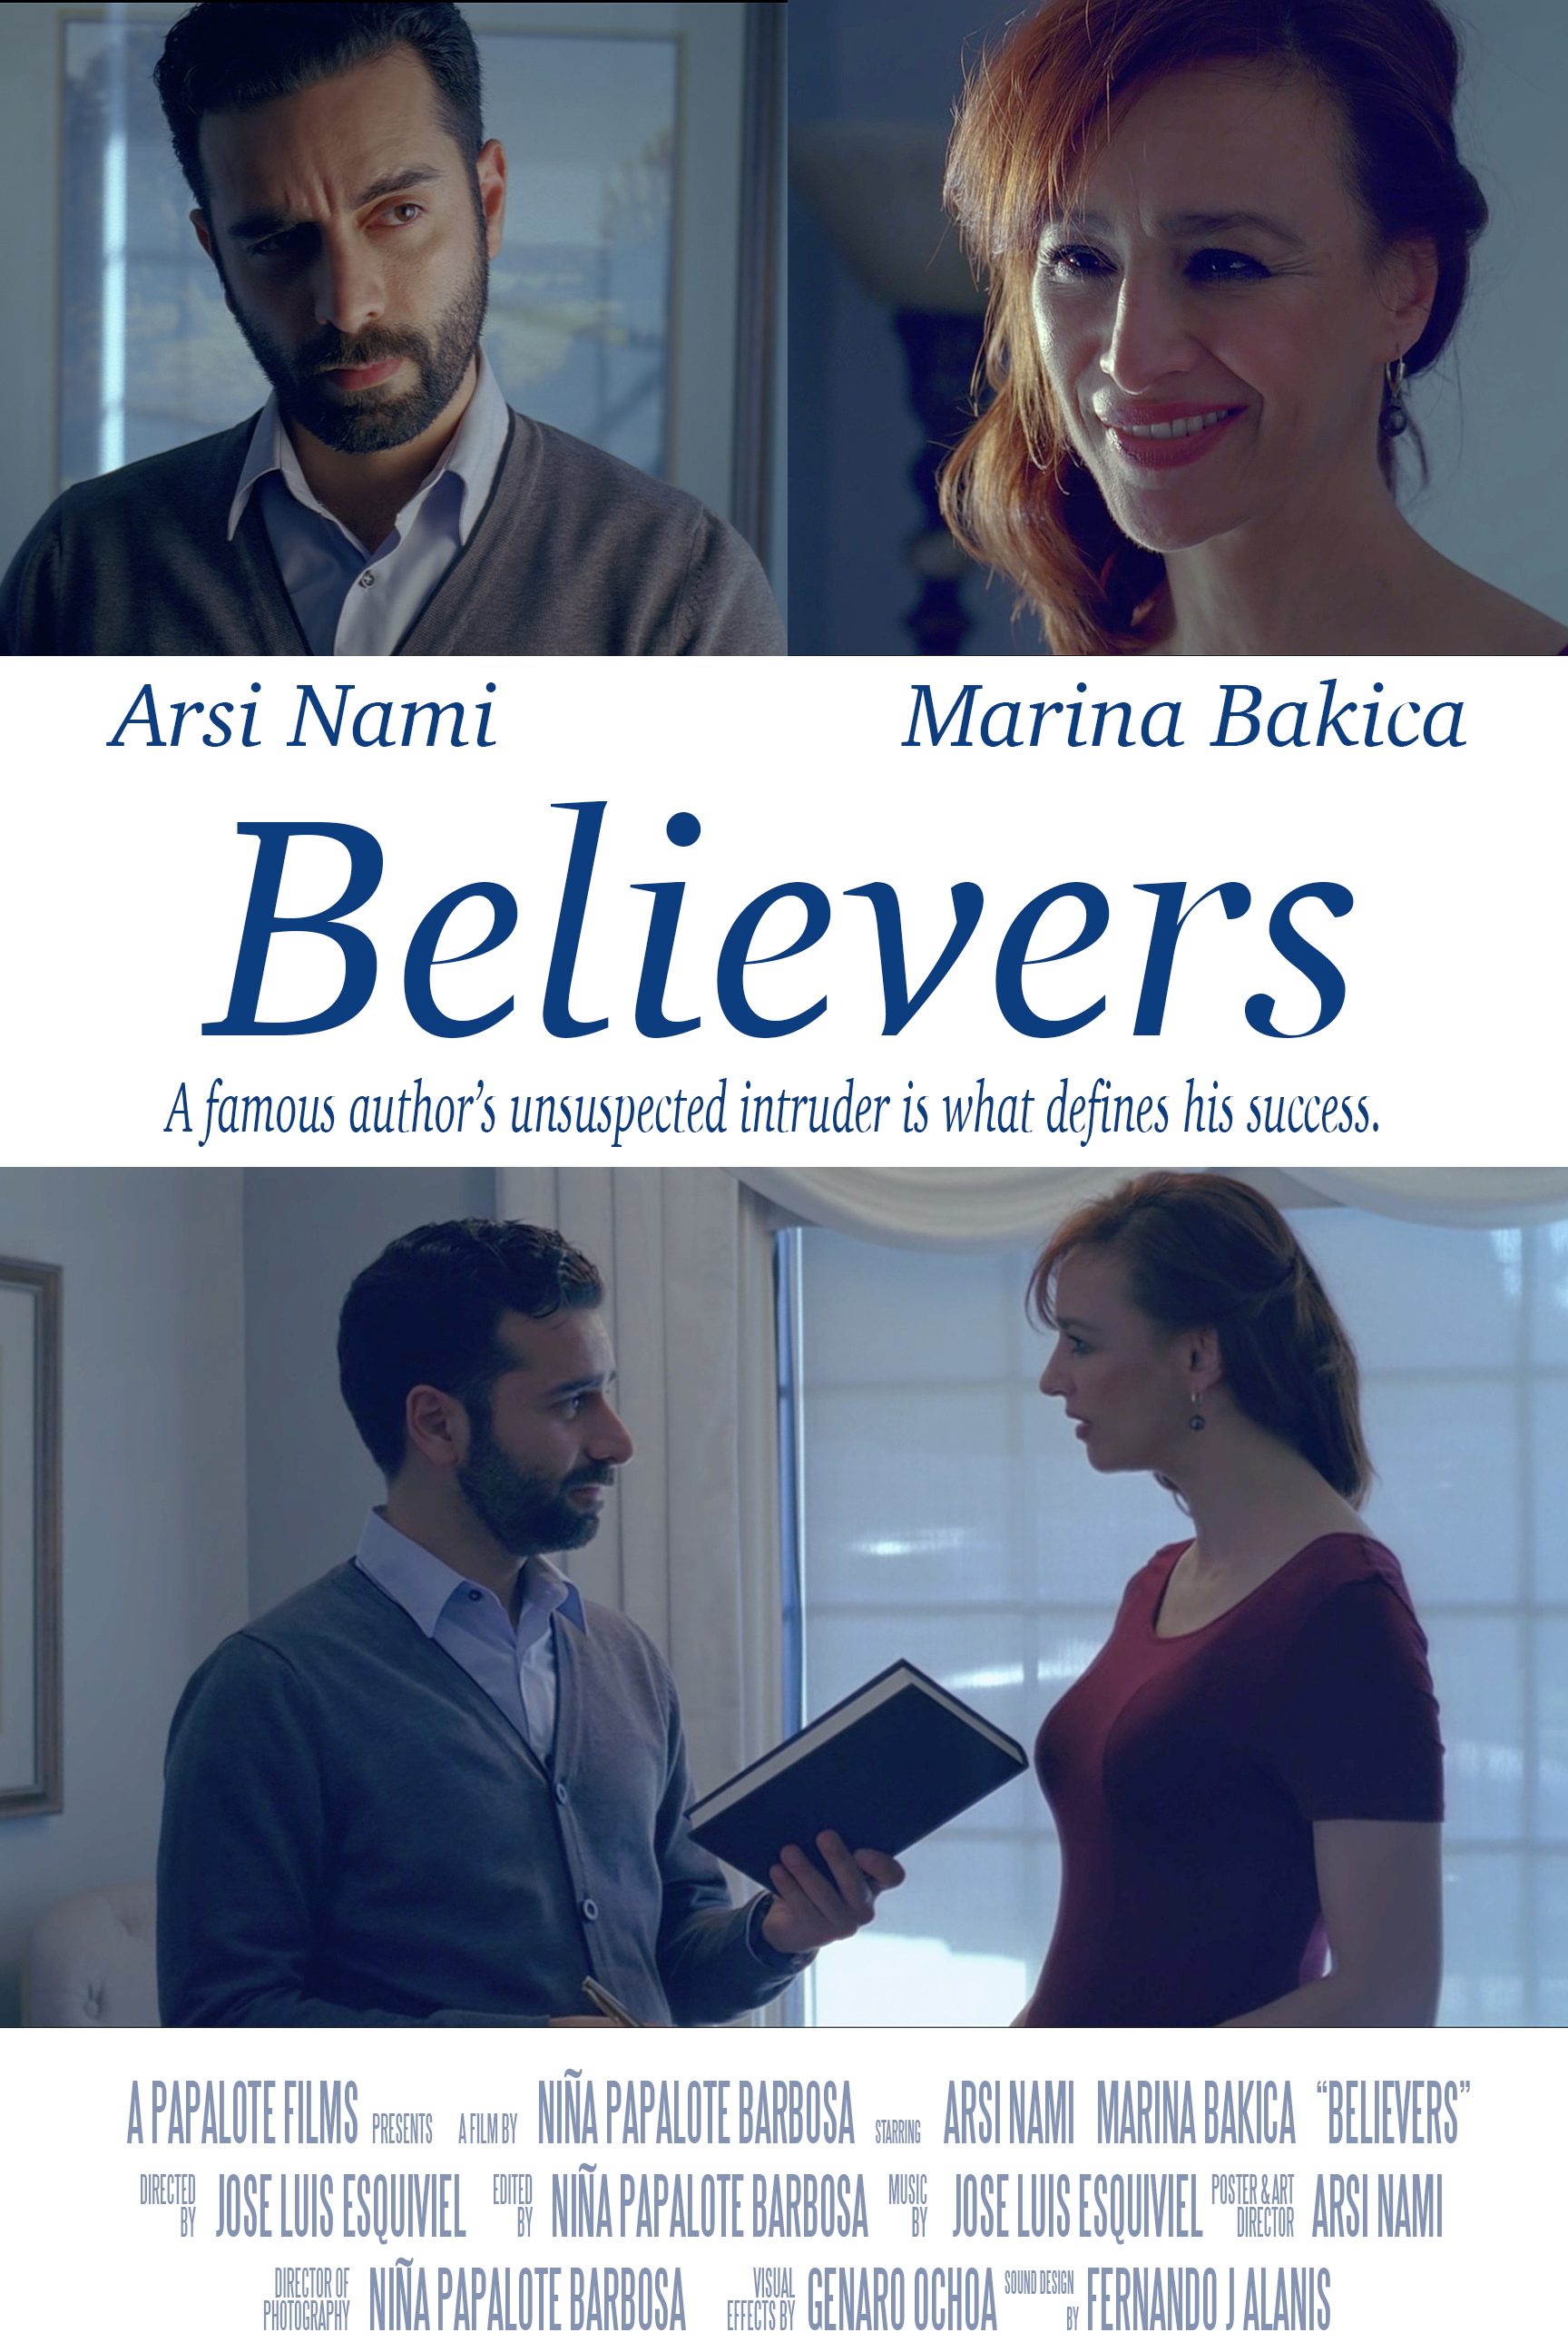 Arsi Nami as author in Believers